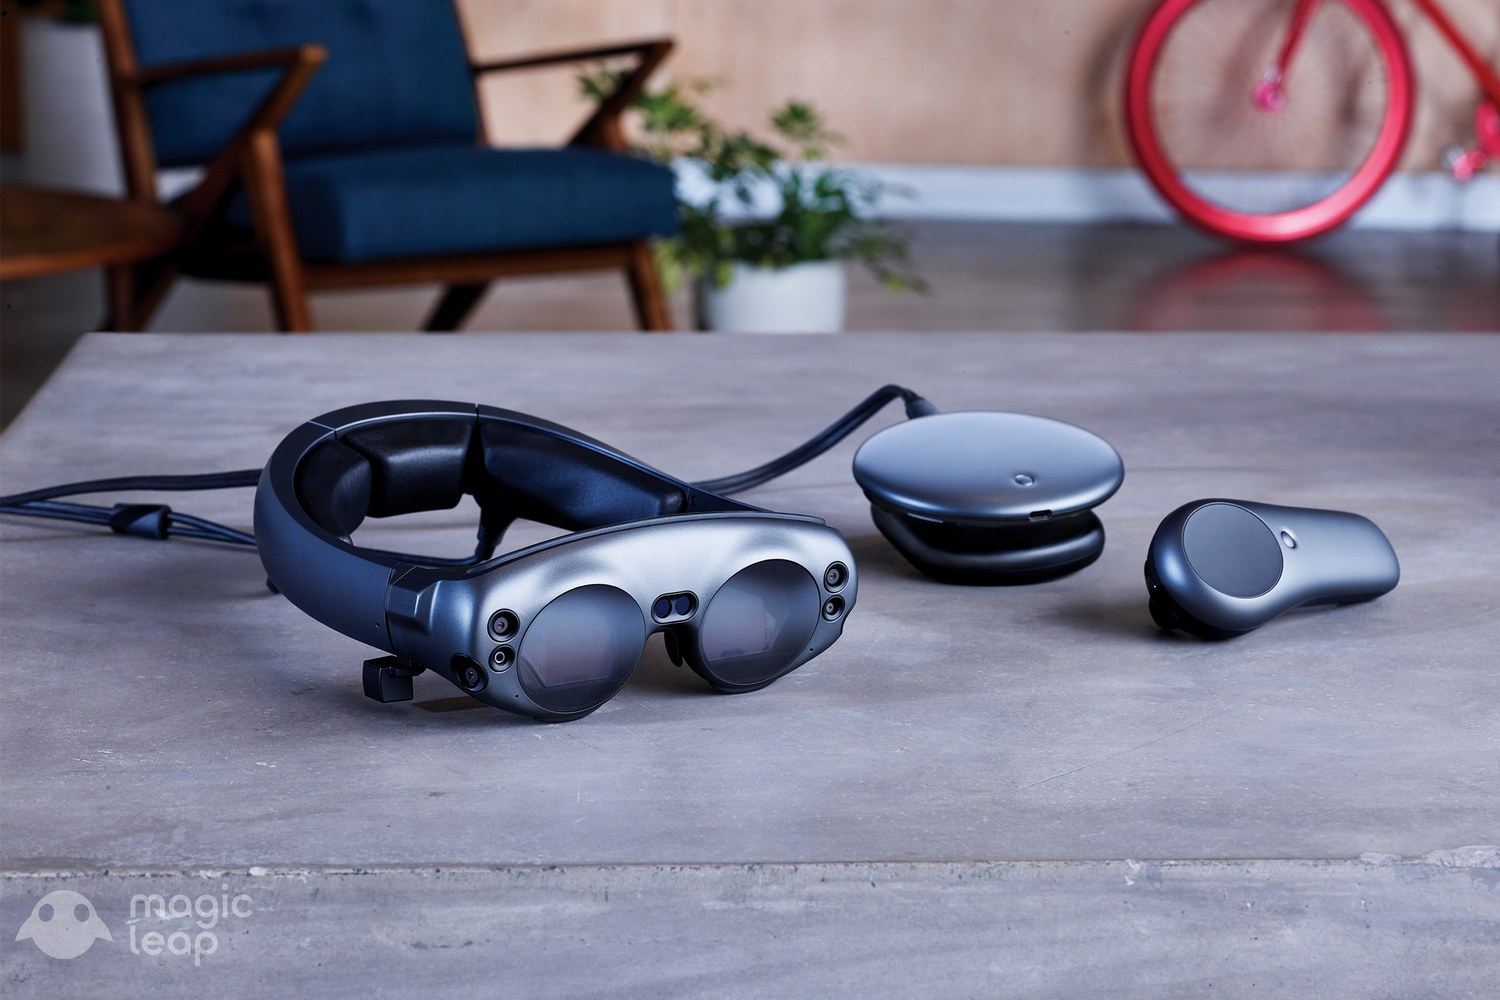 The first sales of Magic Leap devices don't look good